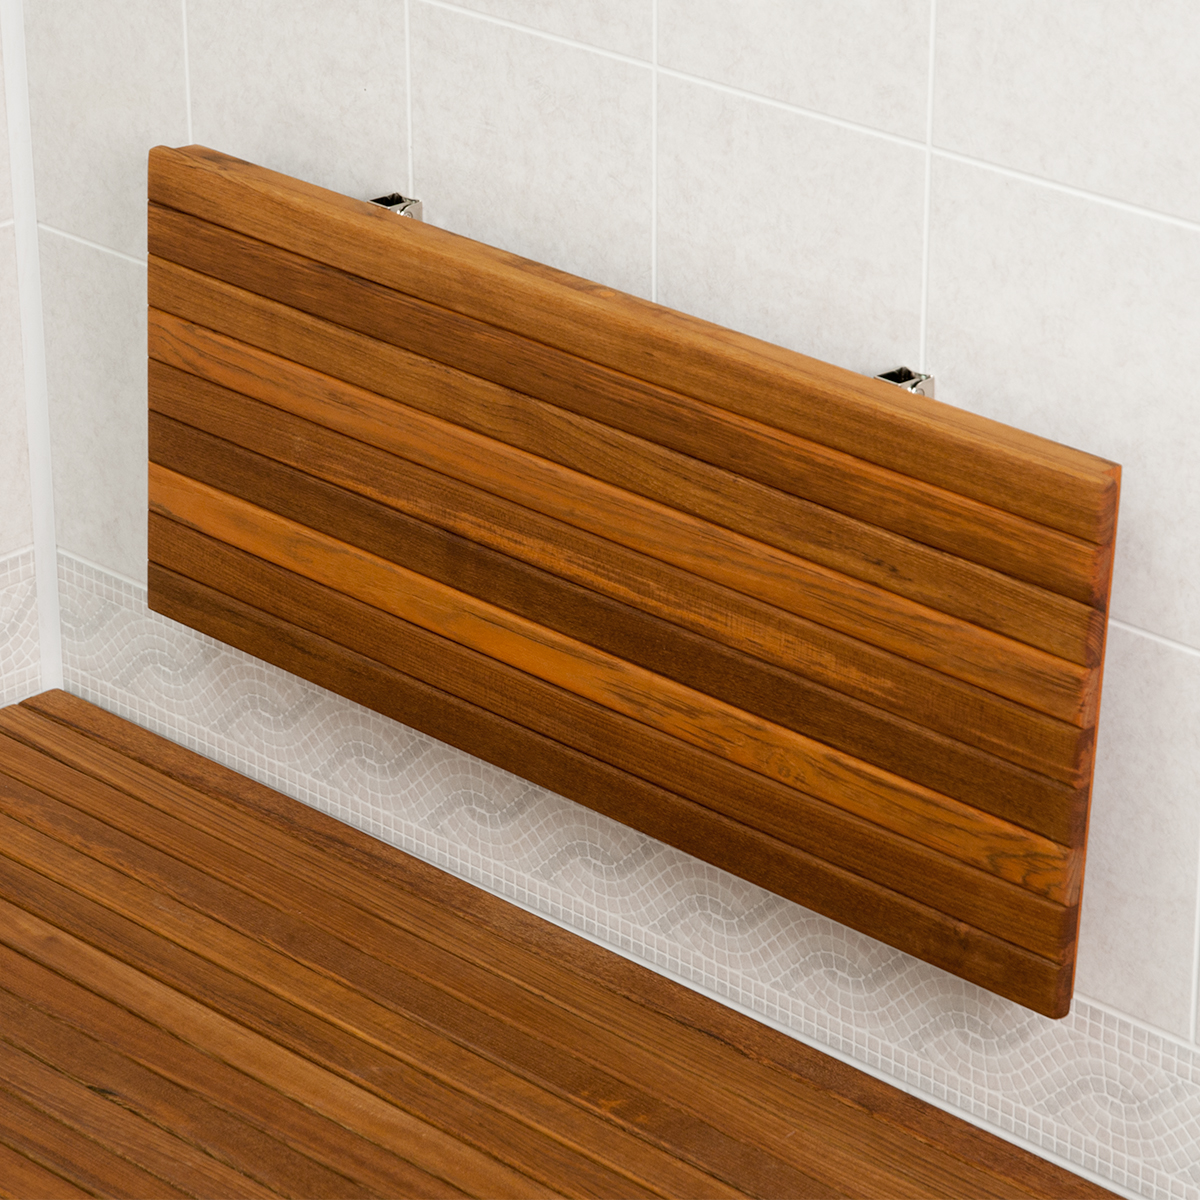 home amazon com teak for kai improvement shelf with dp bench shower stainless patented corner